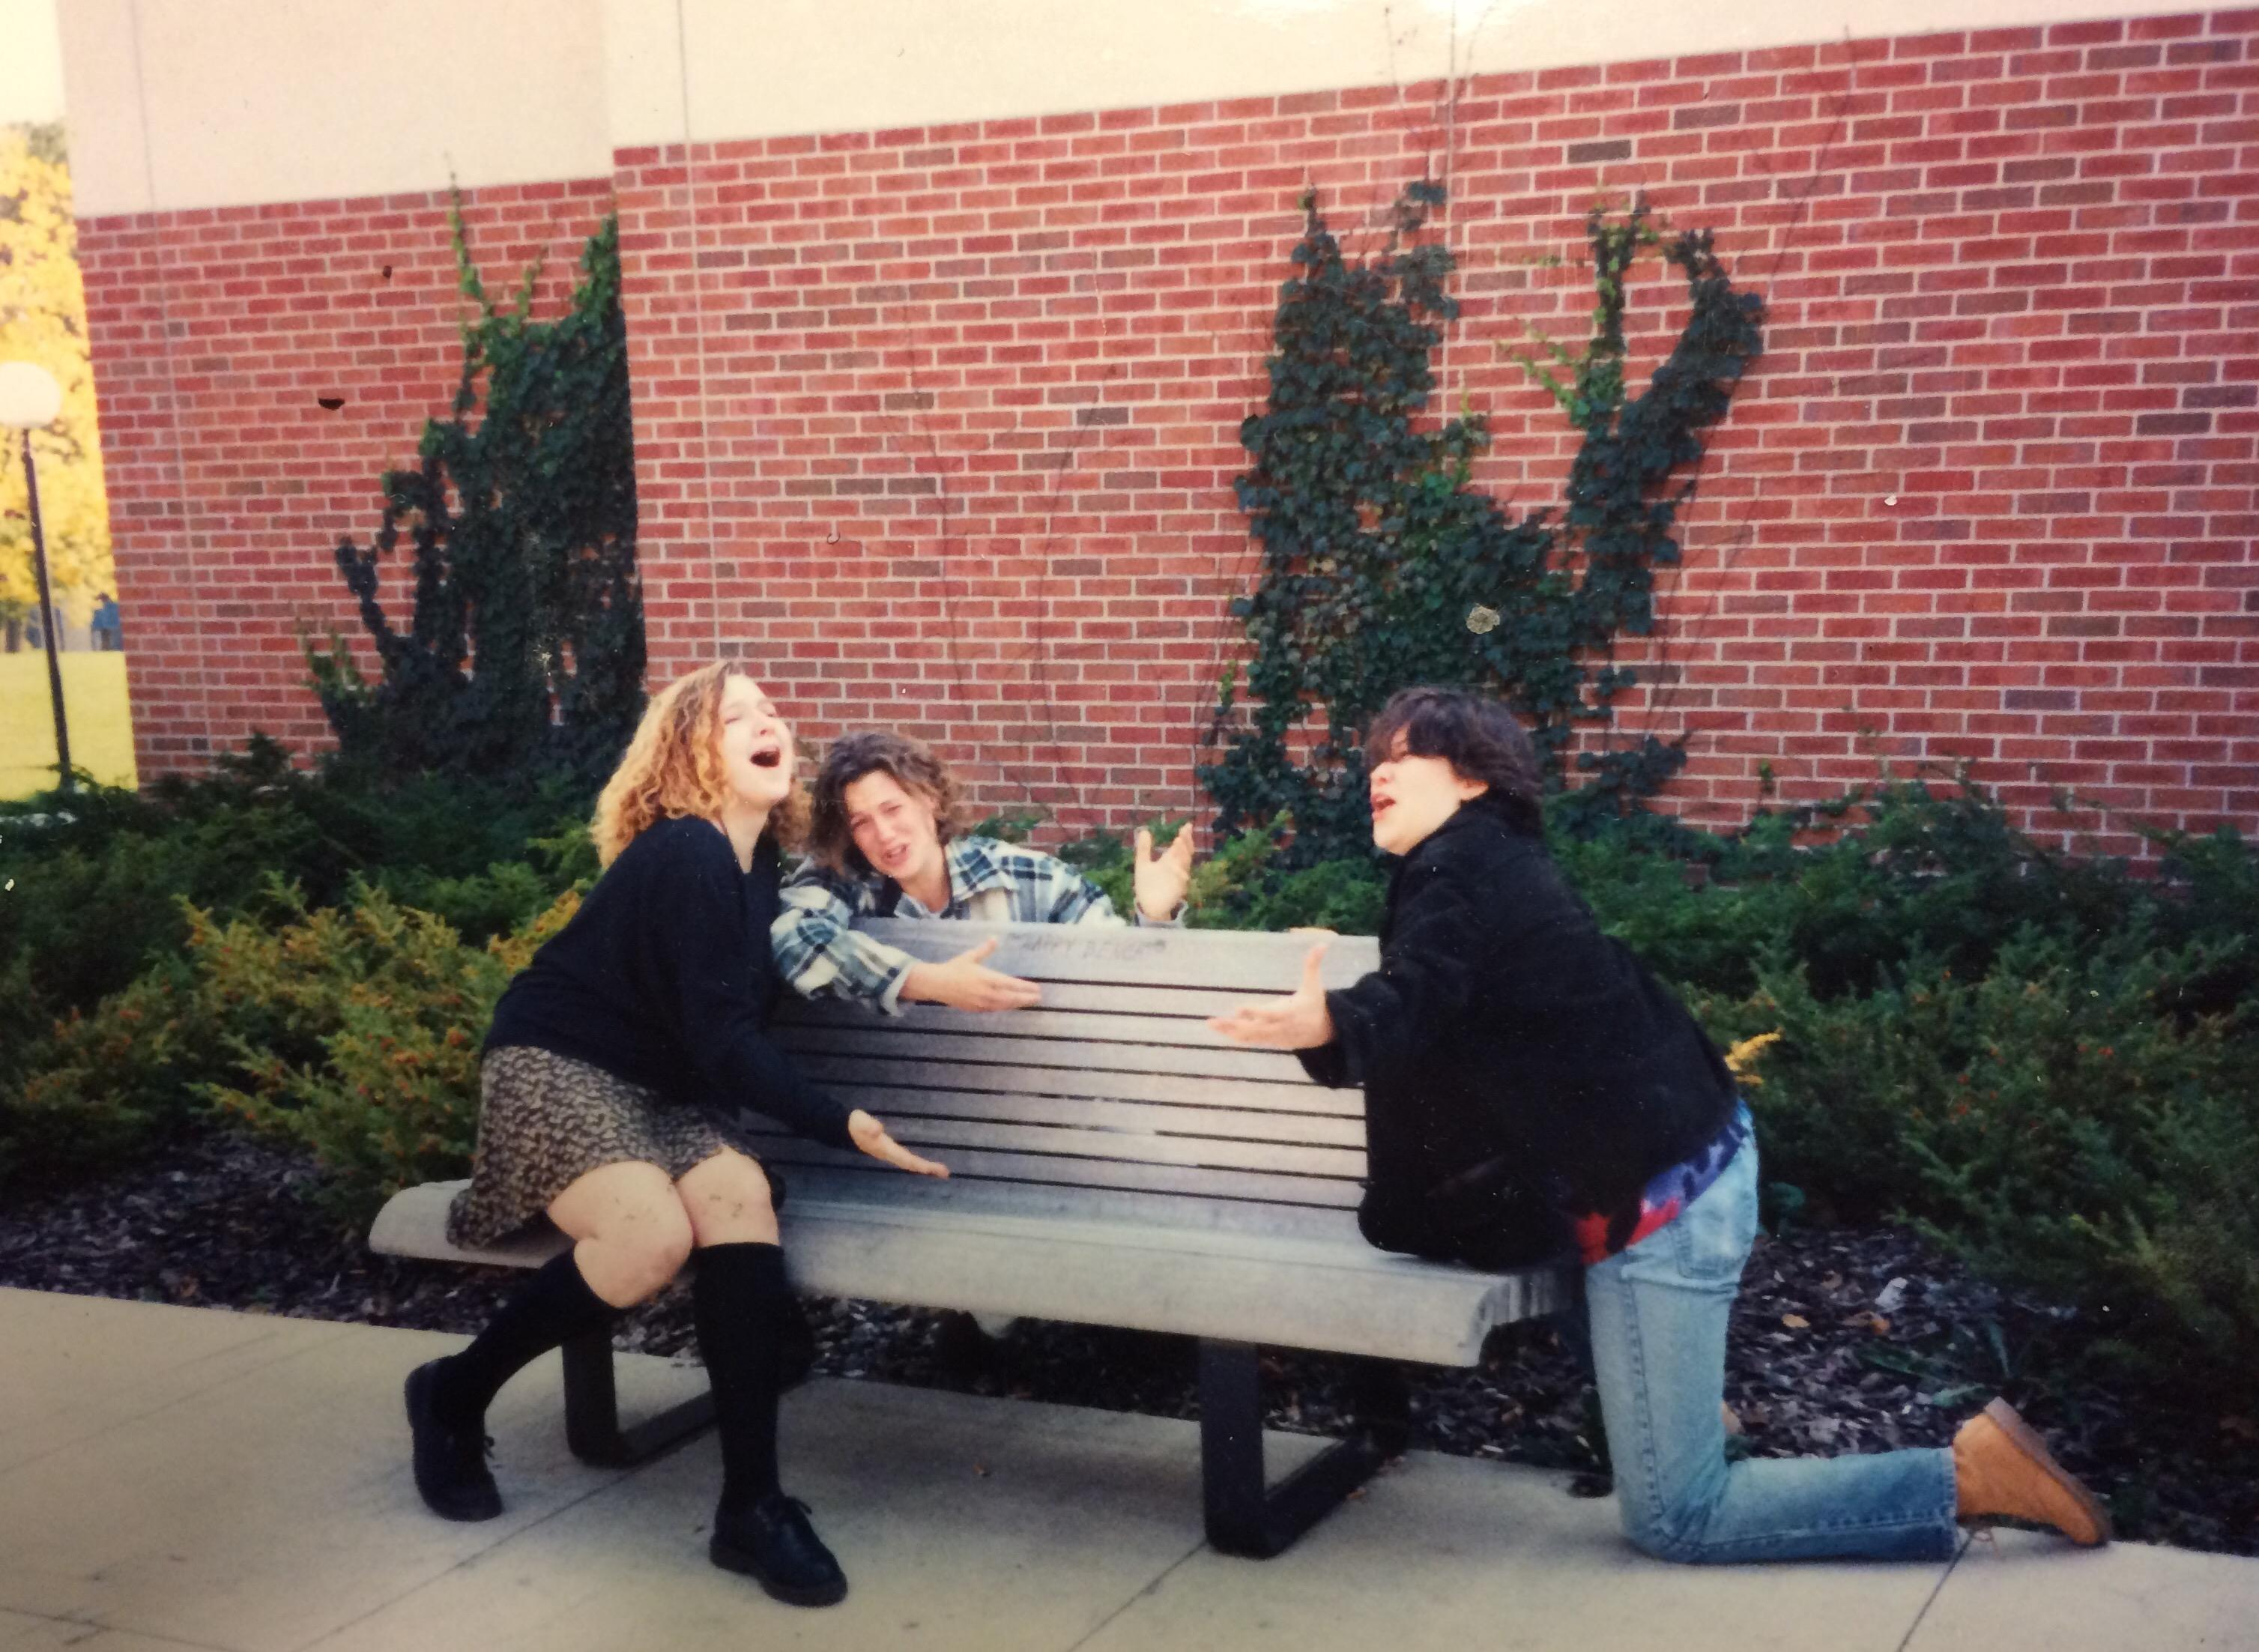 Three young women singing on a bench